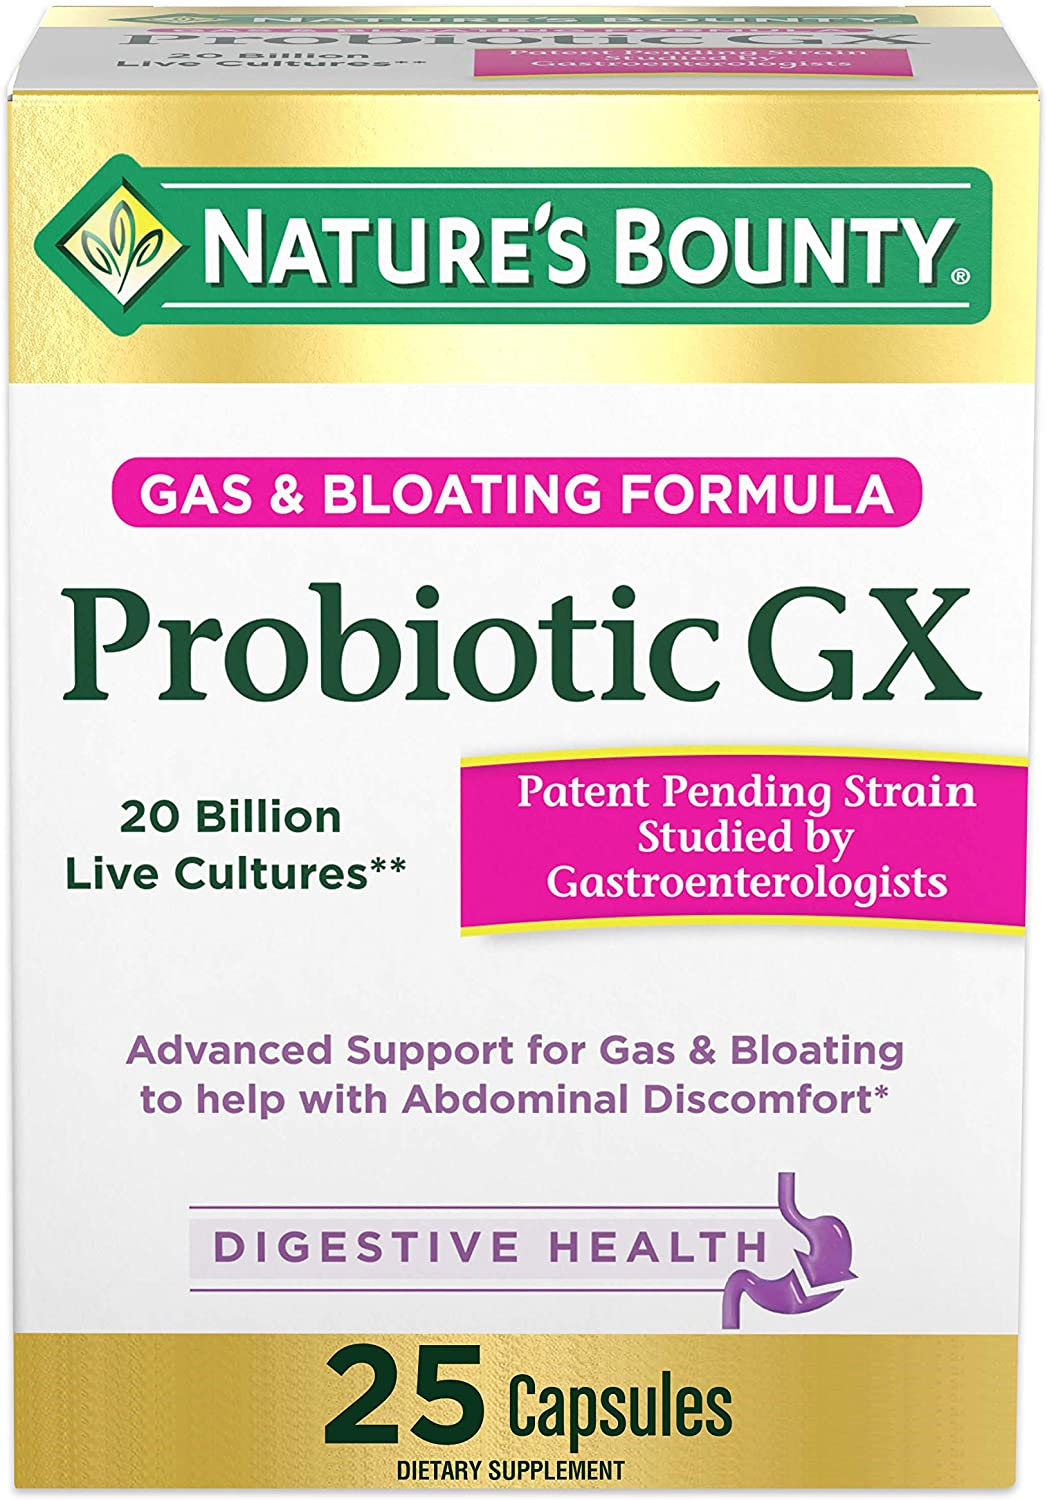 Probiotic, for Occasional Gas and Bloating Dietary Formula by Nature's Bounty, Dietary Supplement, Helps with Abdominal Discomfort, Promotes Digestive Health, 25 Capsules: Health & Personal Care